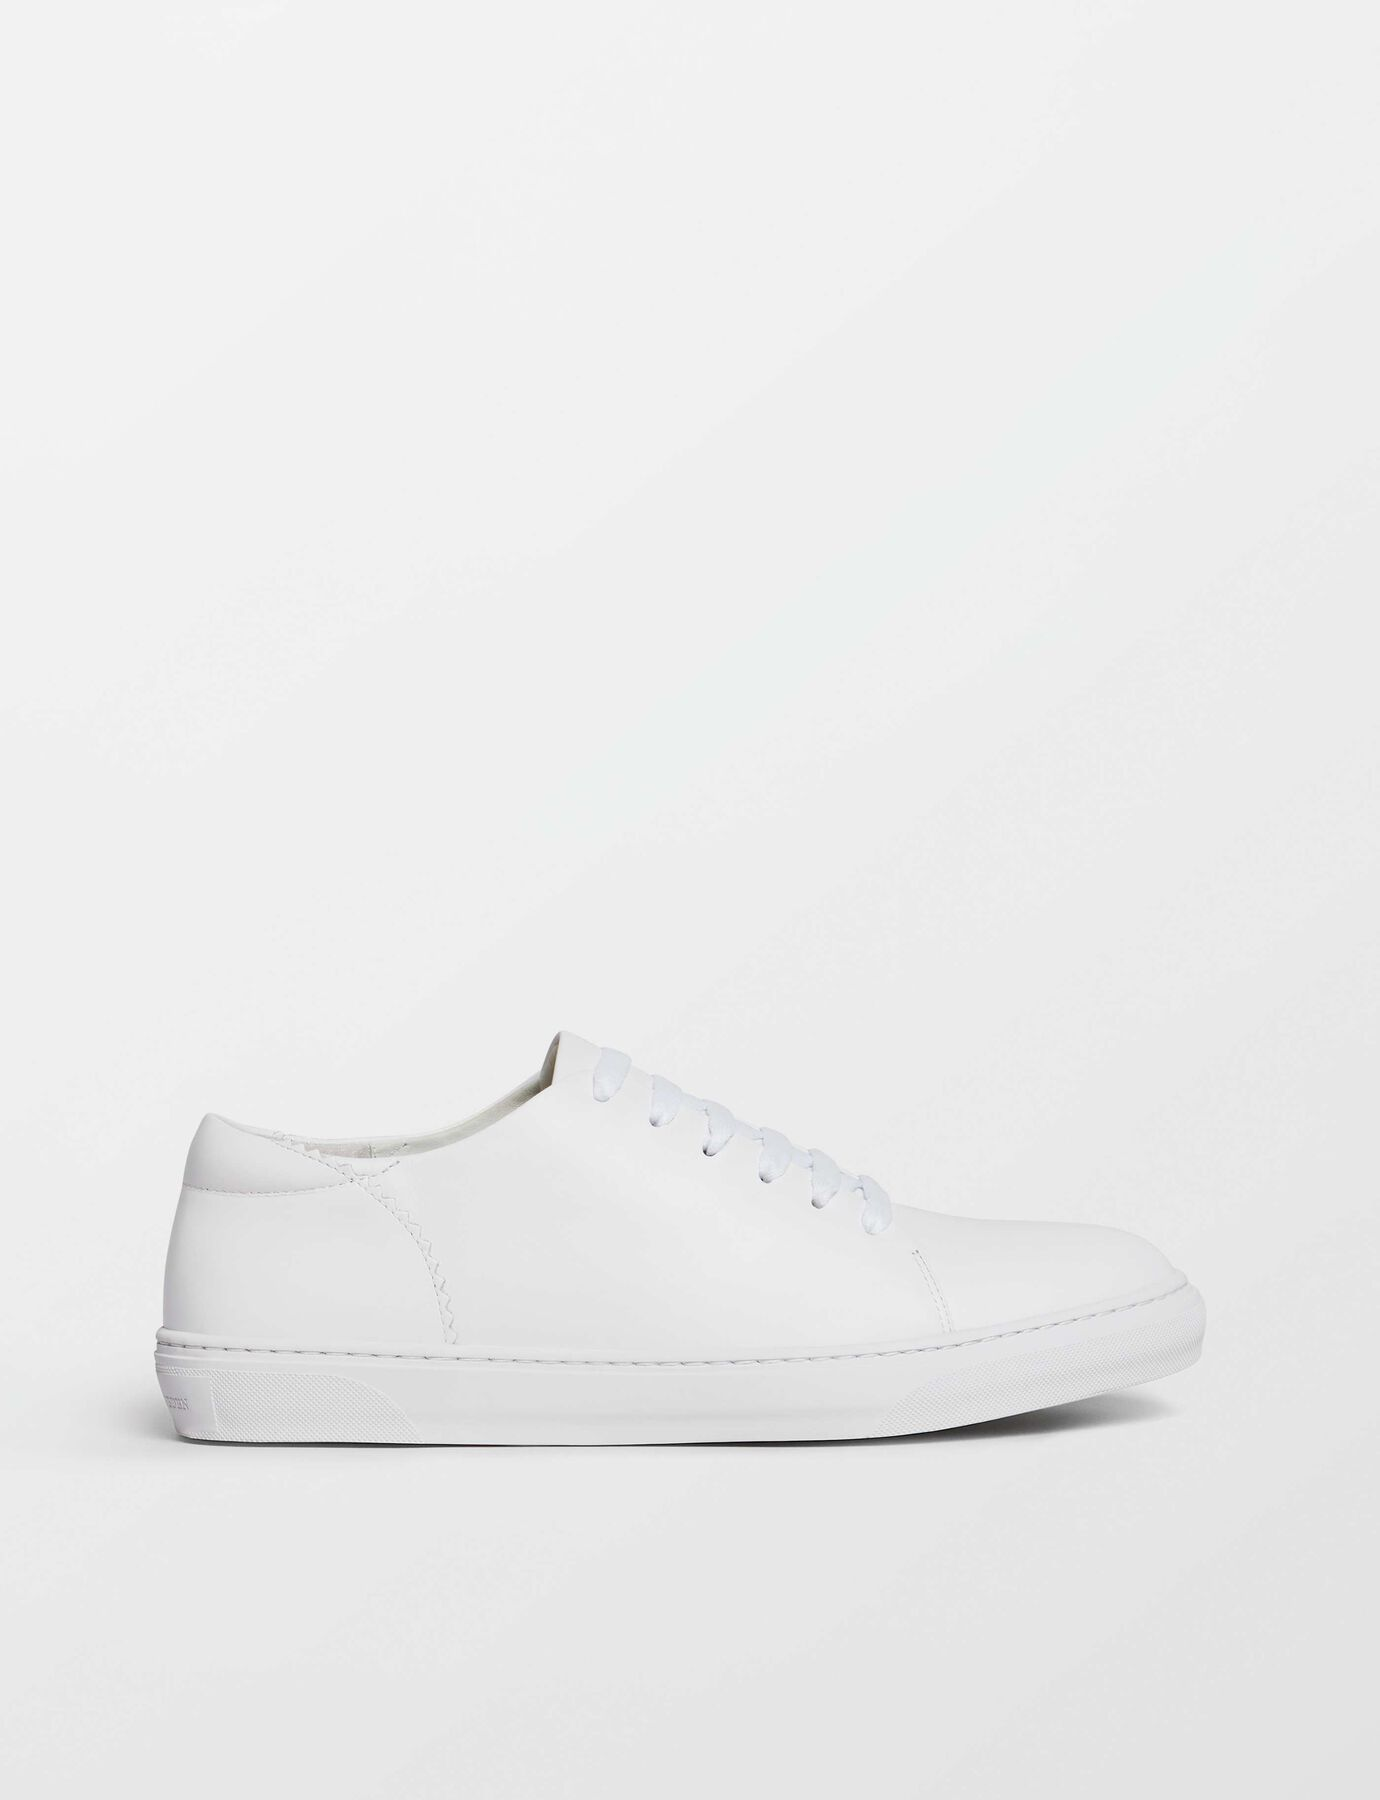 Yvelle sneakers  in Bright White from Tiger of Sweden